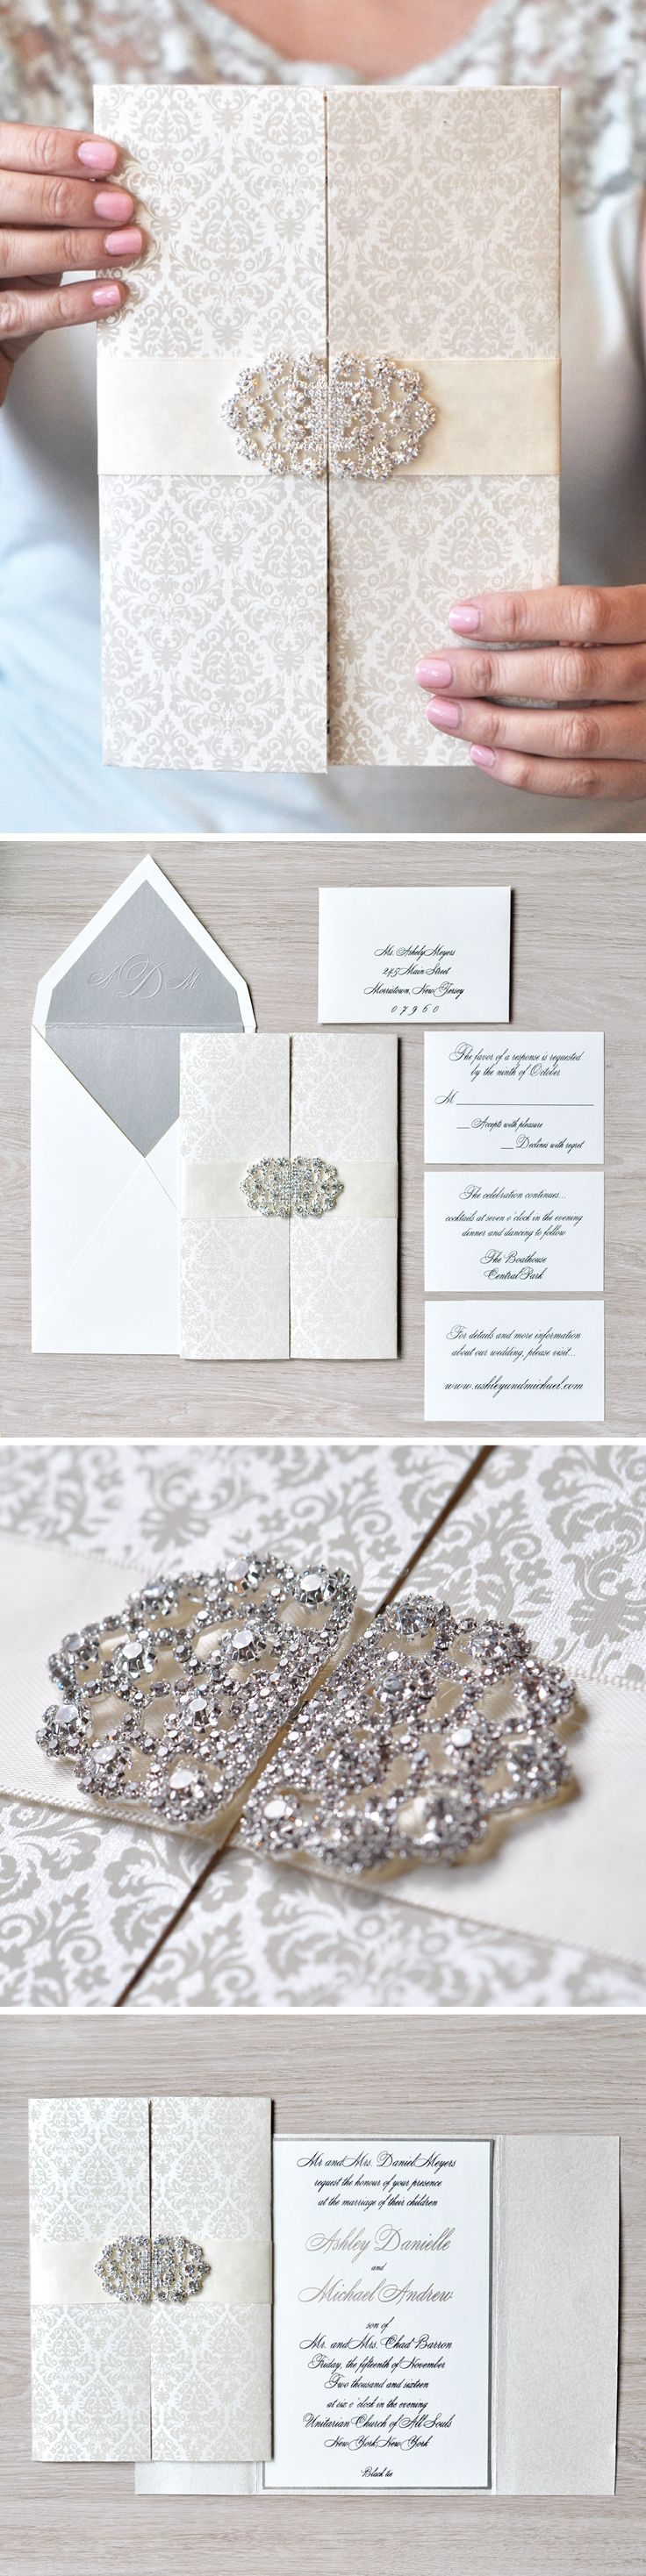 Damask u0026 Gatefold Wedding Invitation Alyssa